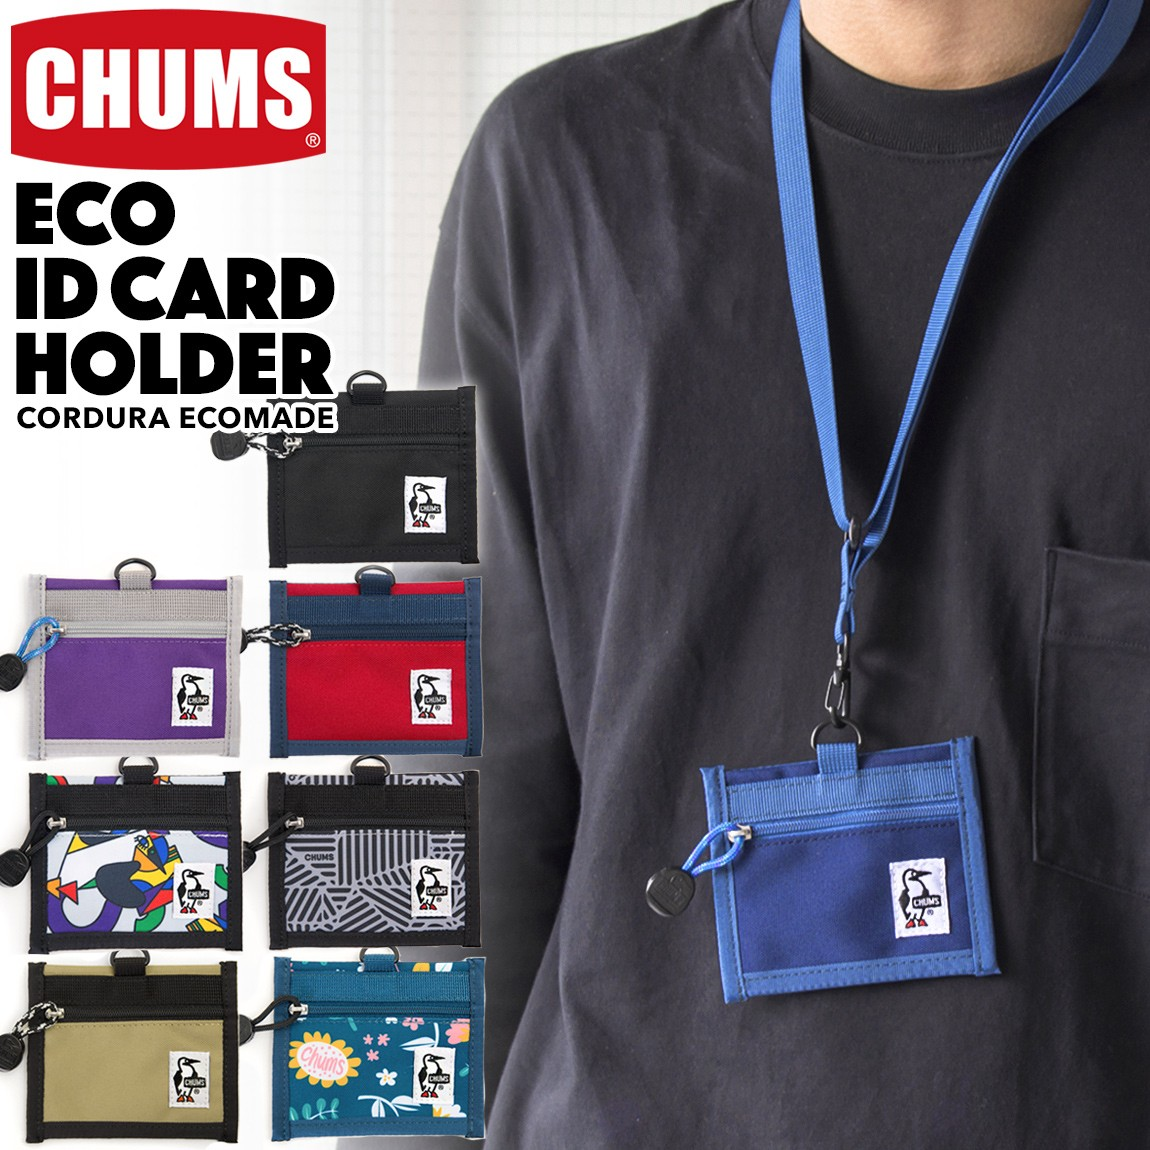 CHUMS Eco ID Card Holder